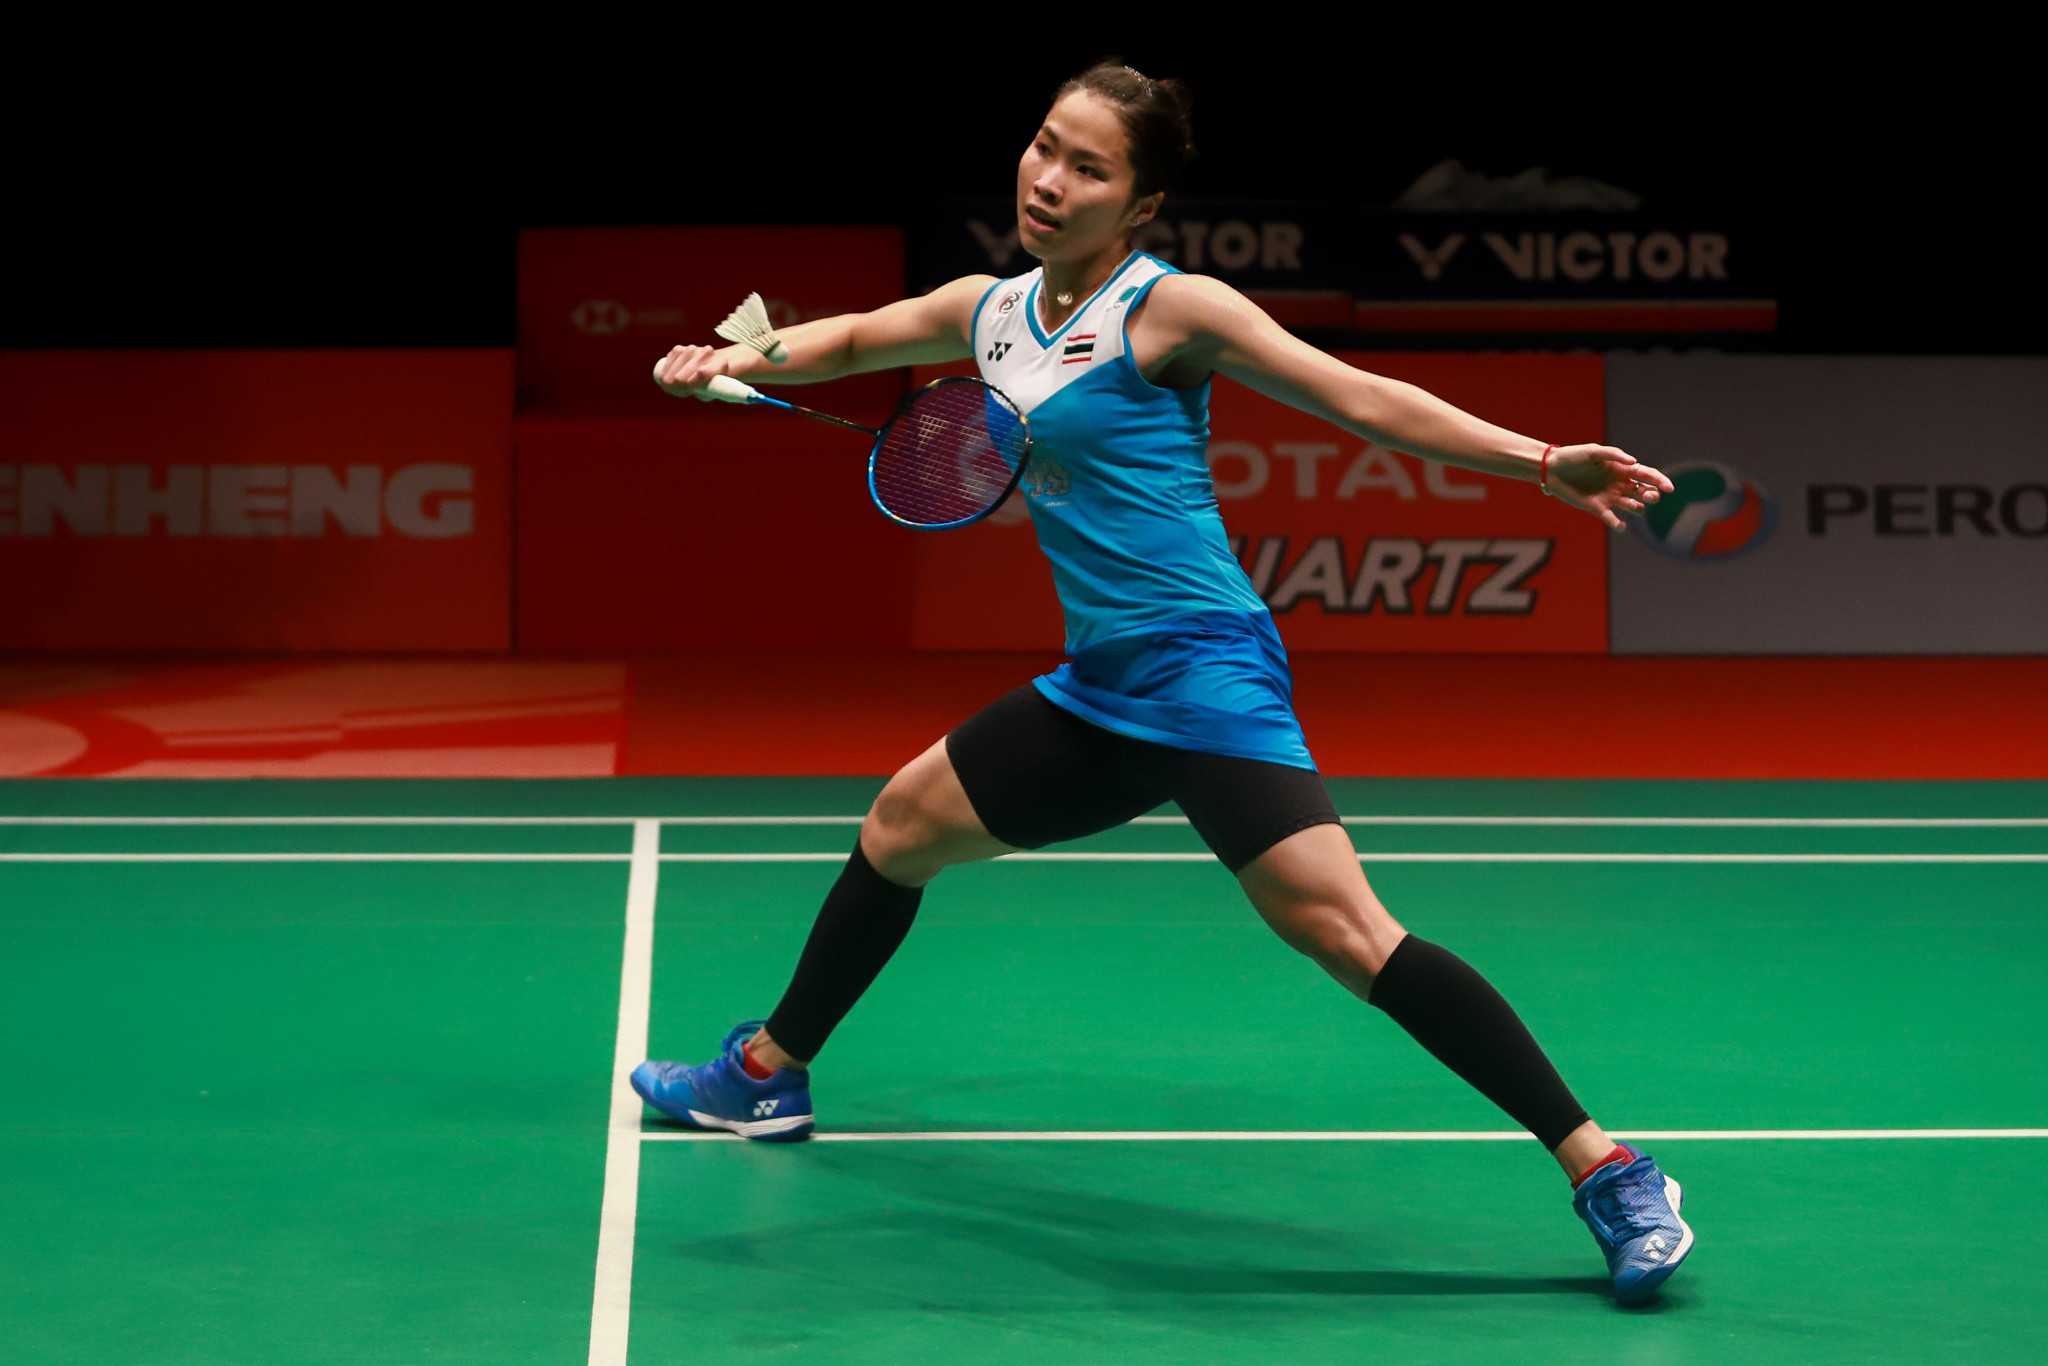 Ratchanok Intanon won the women's event for the third time in her career ©Getty Images